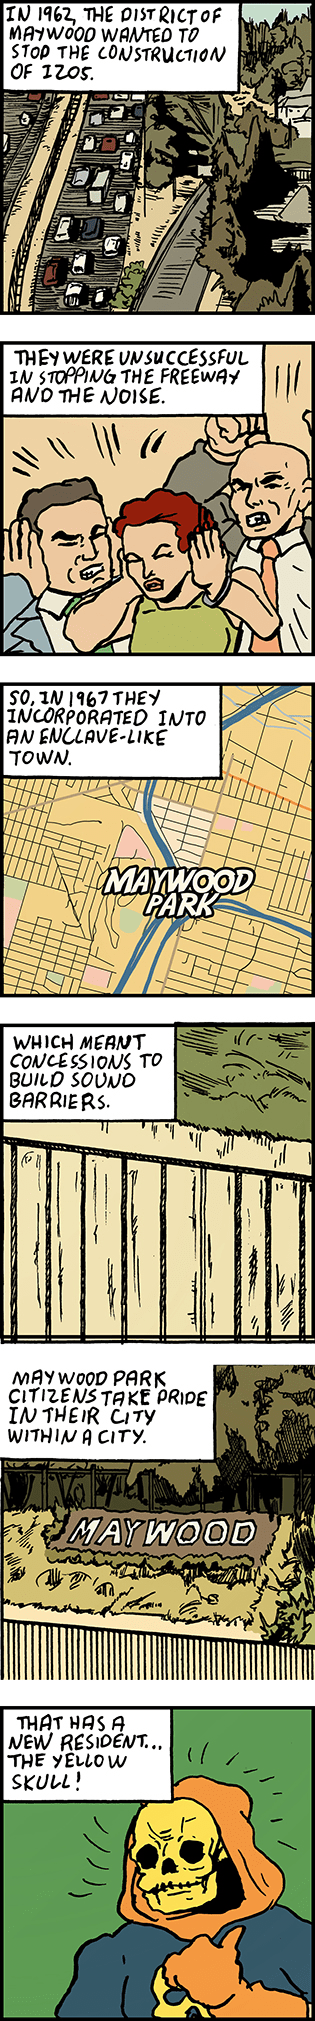 Down in Maywood